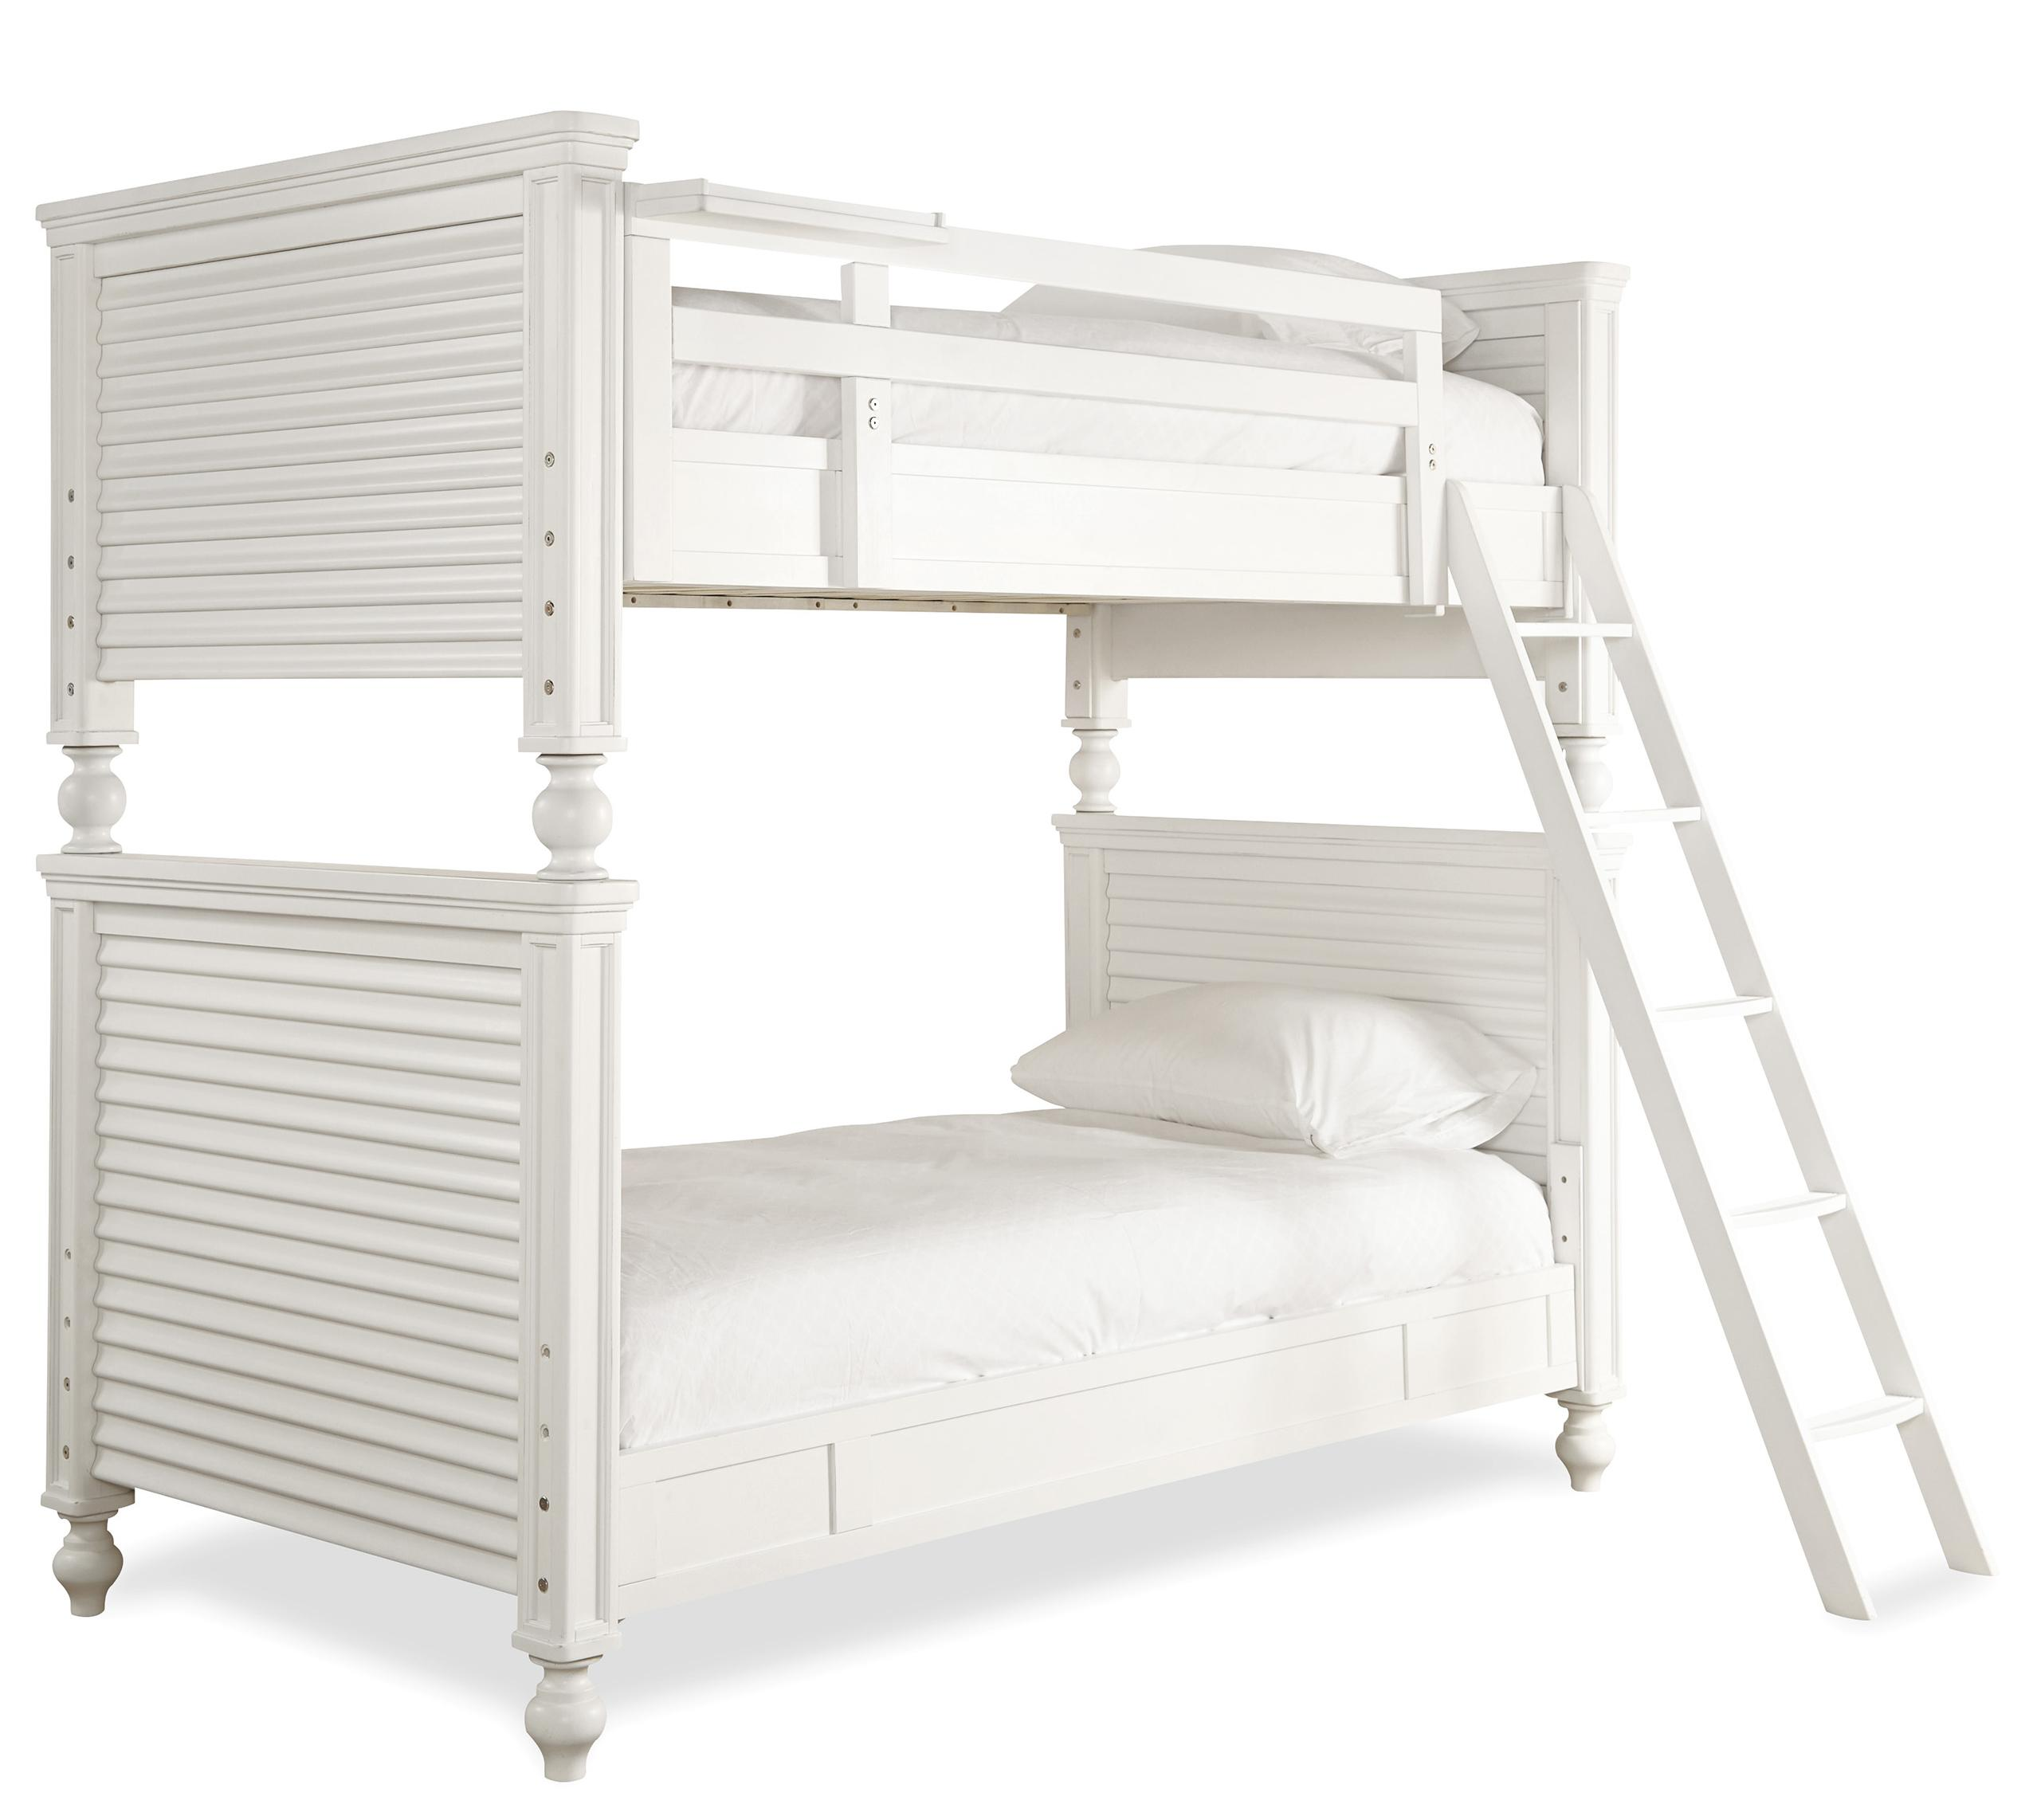 Smartstuff Black and White Twin All American Bunk Bed - Item Number: 437A530